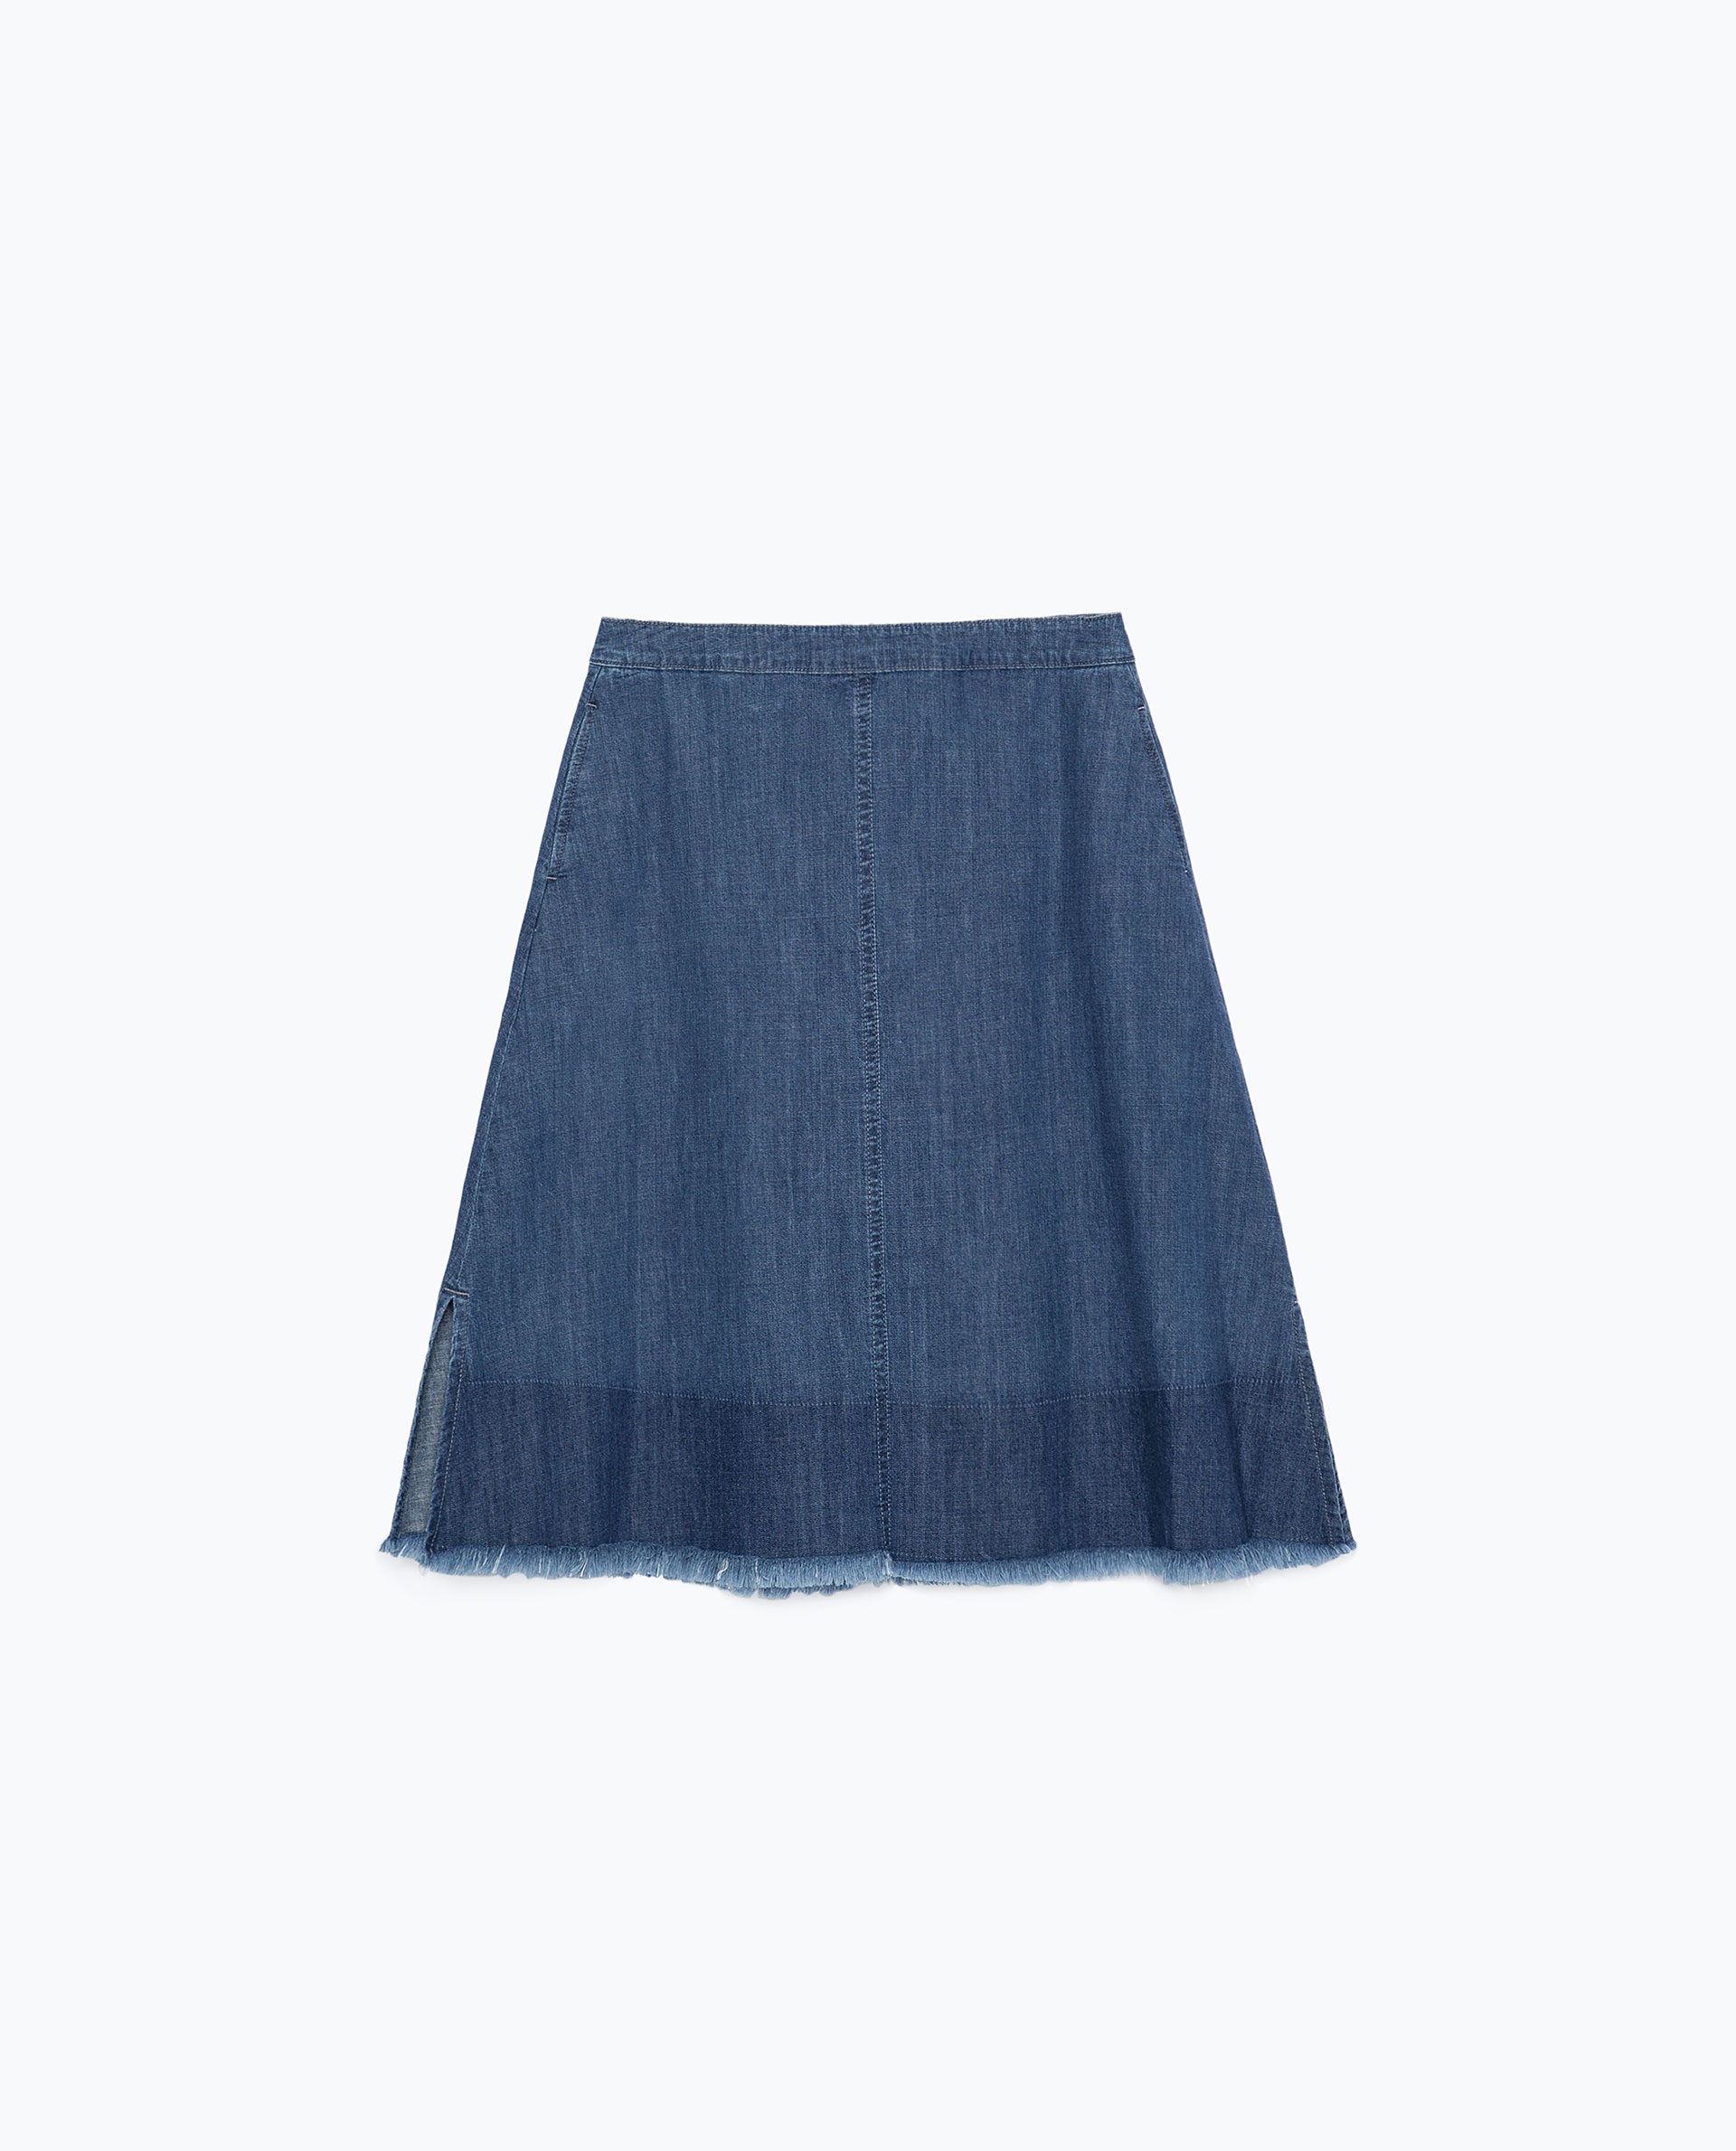 zara mid length frayed denim skirt in blue lyst